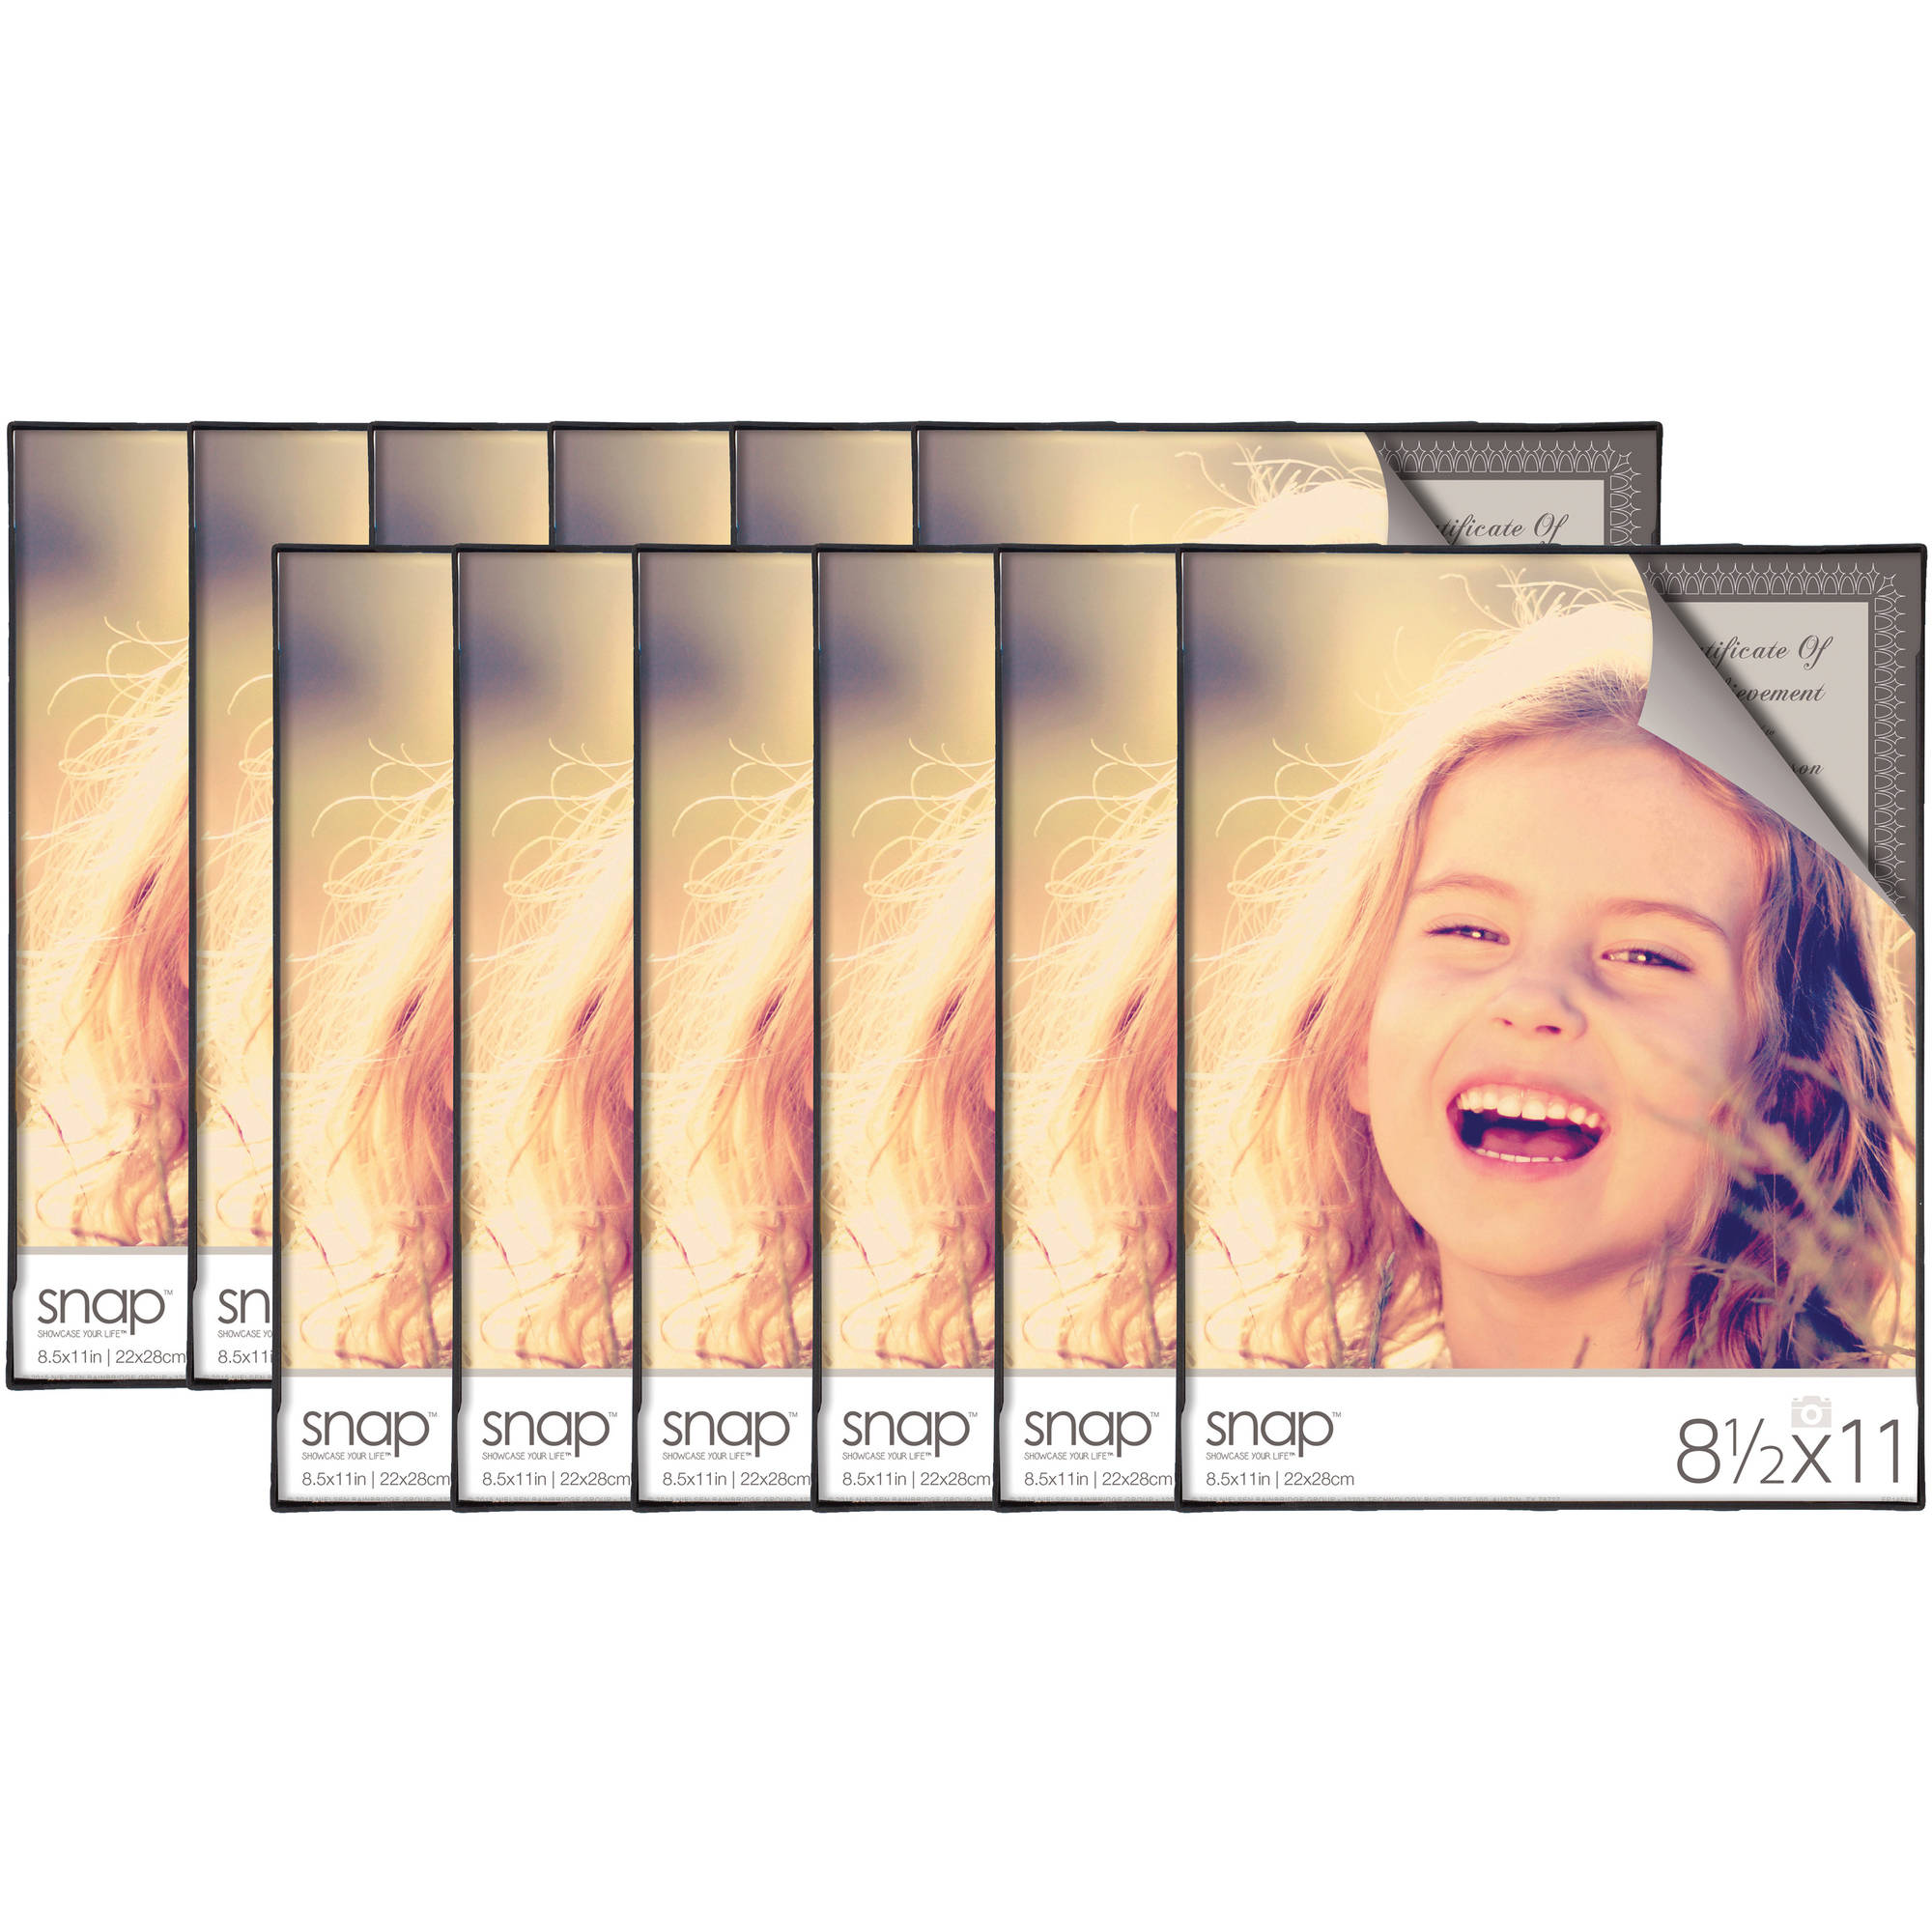 Snap 8.5x11 Front Loading Document Frame, Set of 12 - Walmart.com